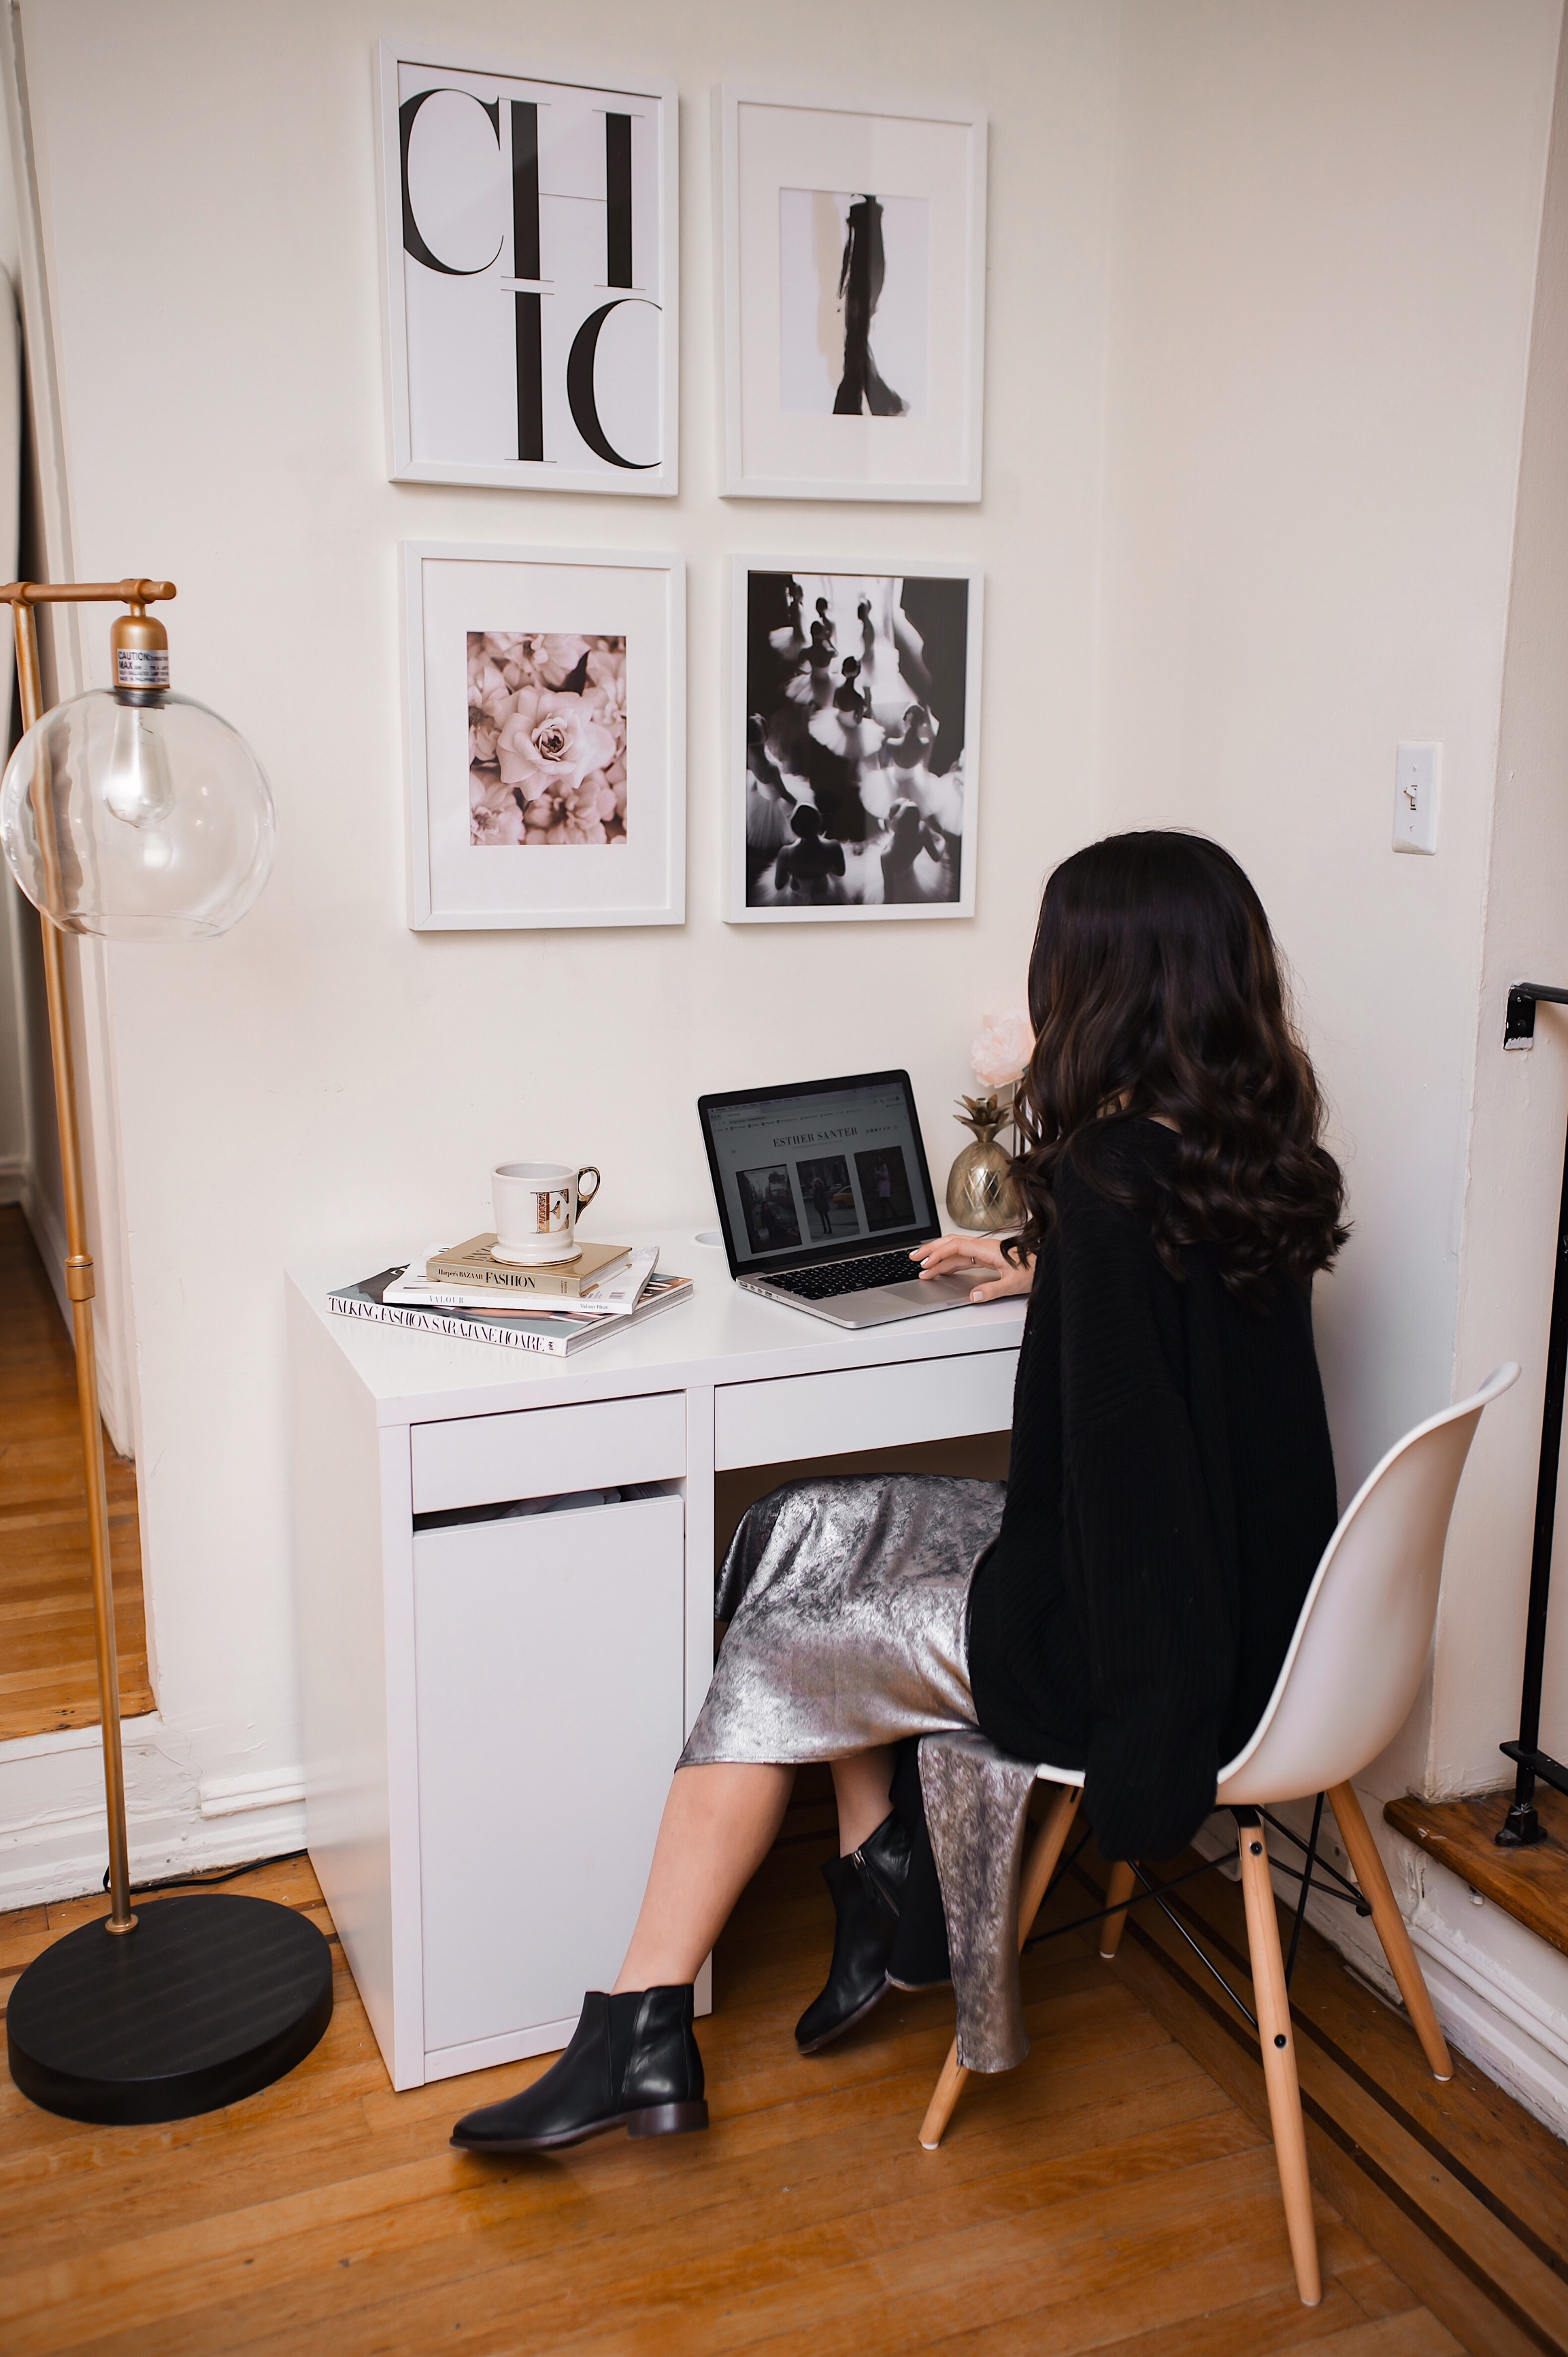 Selling Out And That Time I Got Stuck In A Contract Esther Santer Fashion Blog NYC Street Style Blogger Outfit OOTD Trendy Shopping Computer Macbook Home Office Space Ikea Joss & Main Artwork Prints White Picture Frames Lamp Comfy What To Wear Work.jpg